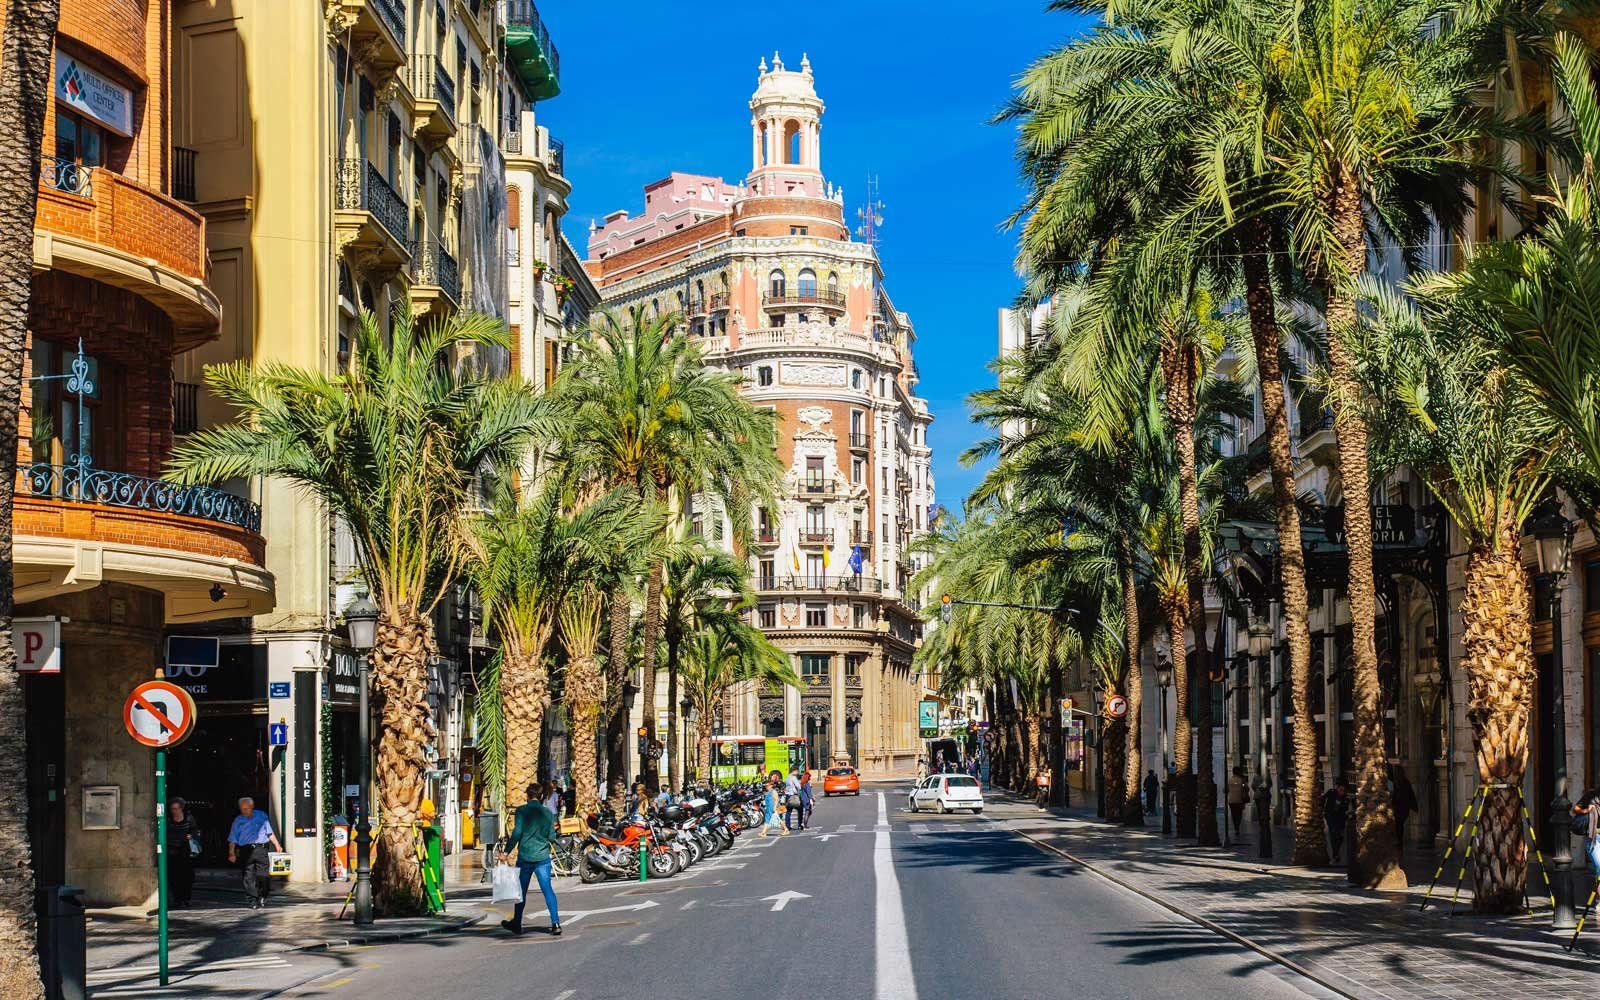 Carrer de les Barques street with palm trees on a sunny day in Valencia, Spain